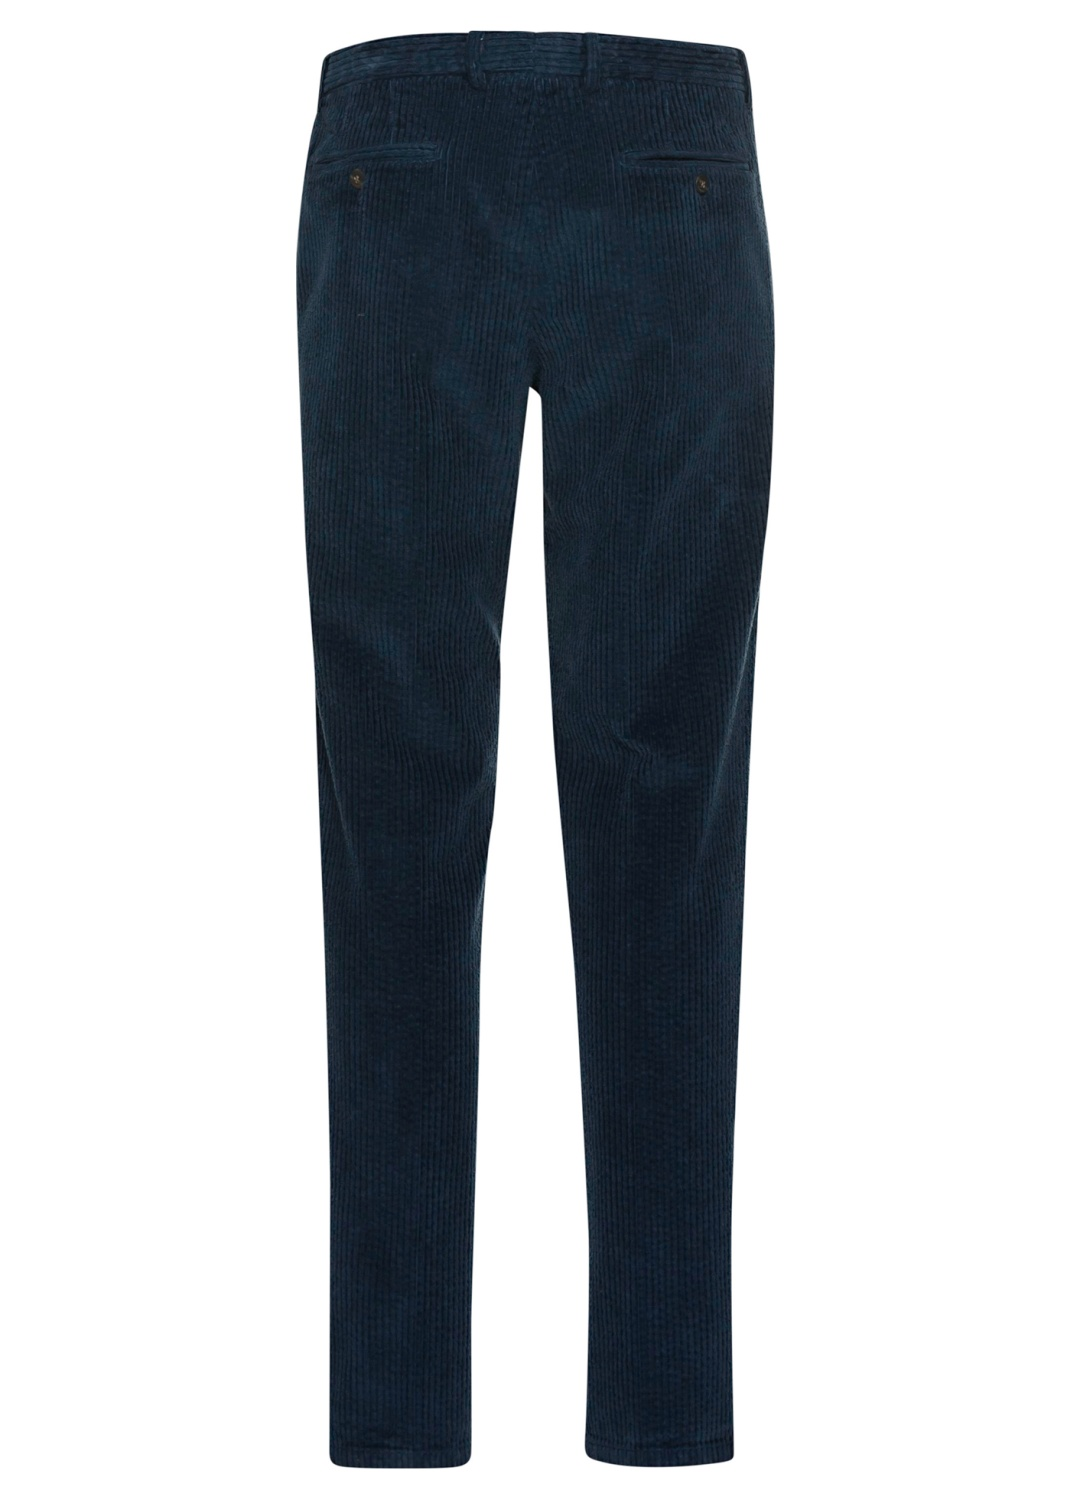 MAN TROUSERS image number 1